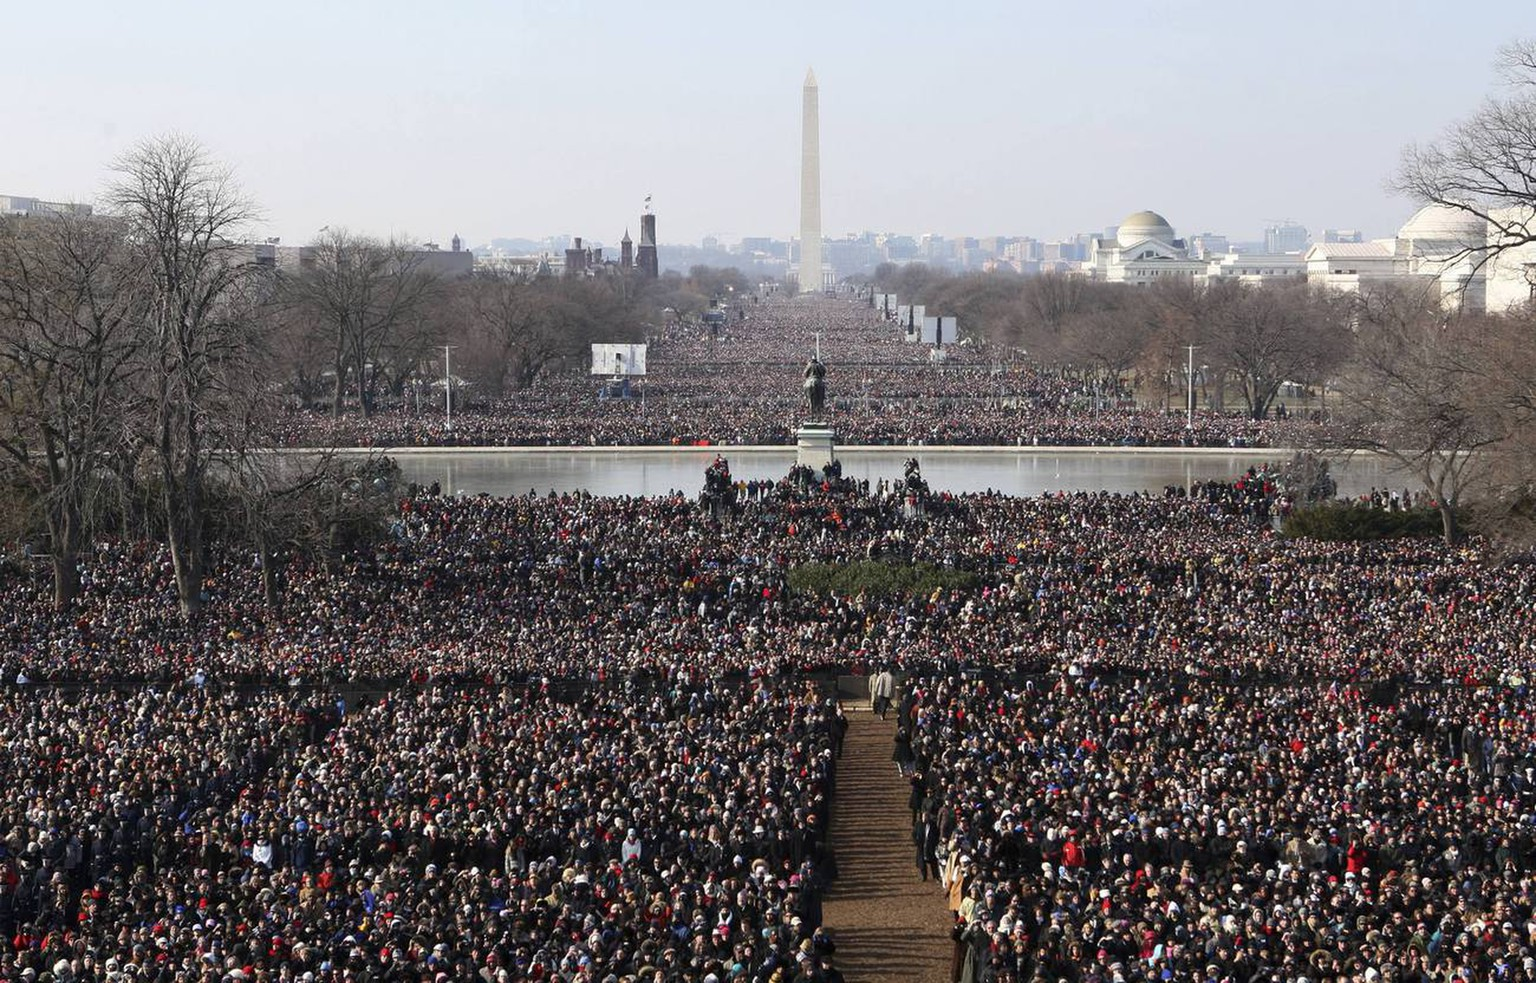 Crowds gather to watch the inauguration of President Barack Obama  Tuesday, Jan. 20, 2009, on the west side of the Capitol in Washington.  The Washington Monument can be seen in the background.   (AP Photo/Scott Andrews, Pool)